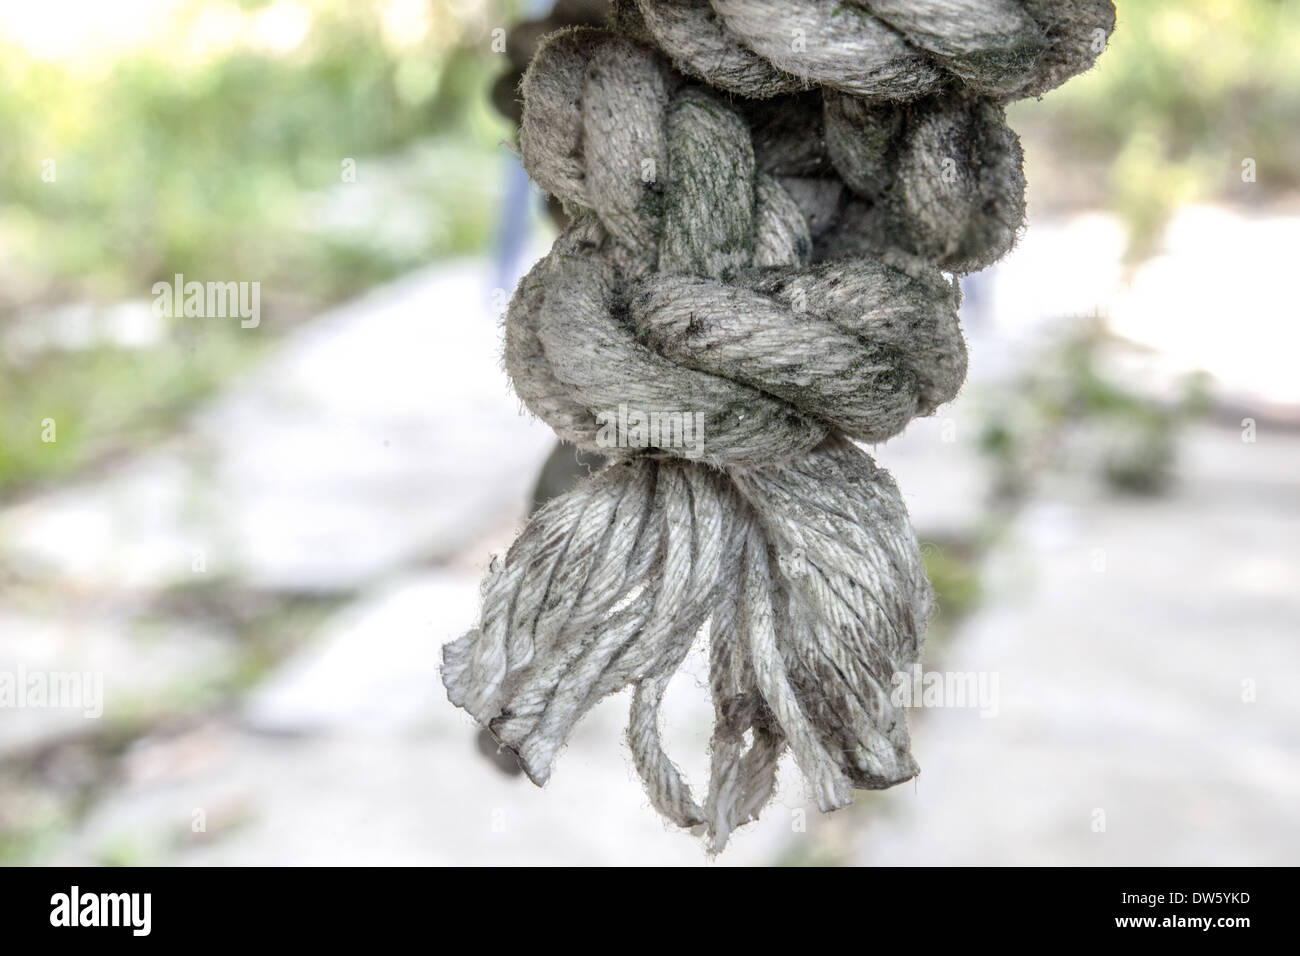 A grungy nylon rope used to hang a swing. - Stock Image